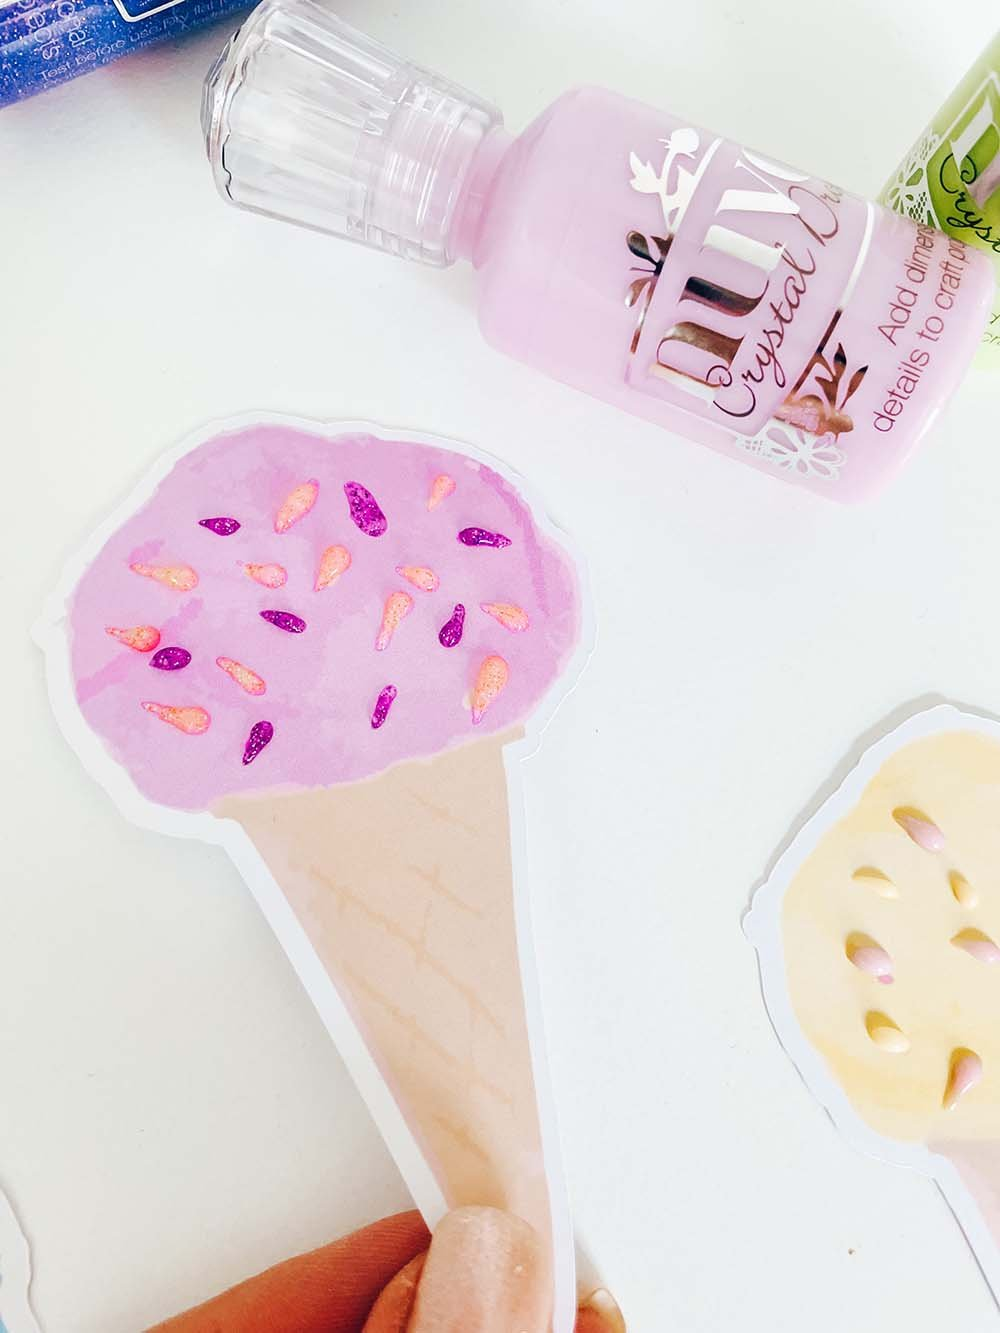 Using Nuvo Drops for Ice Cream sprinkles in crafting